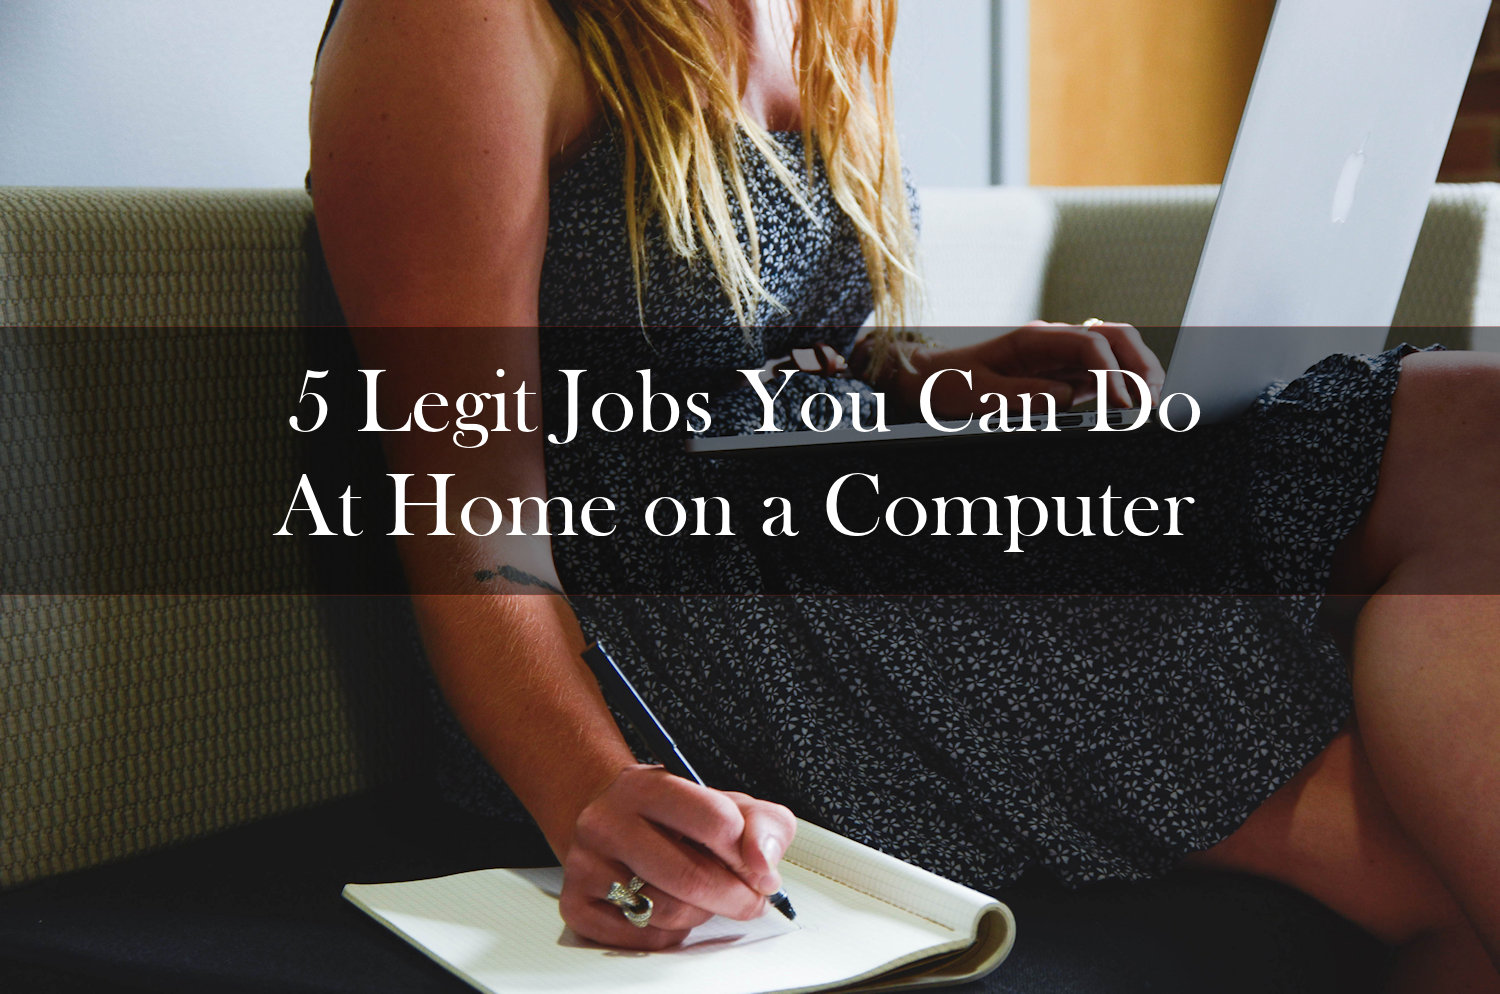 legitimate jobs you can do at home on a computer make a little jobs at home on a computer